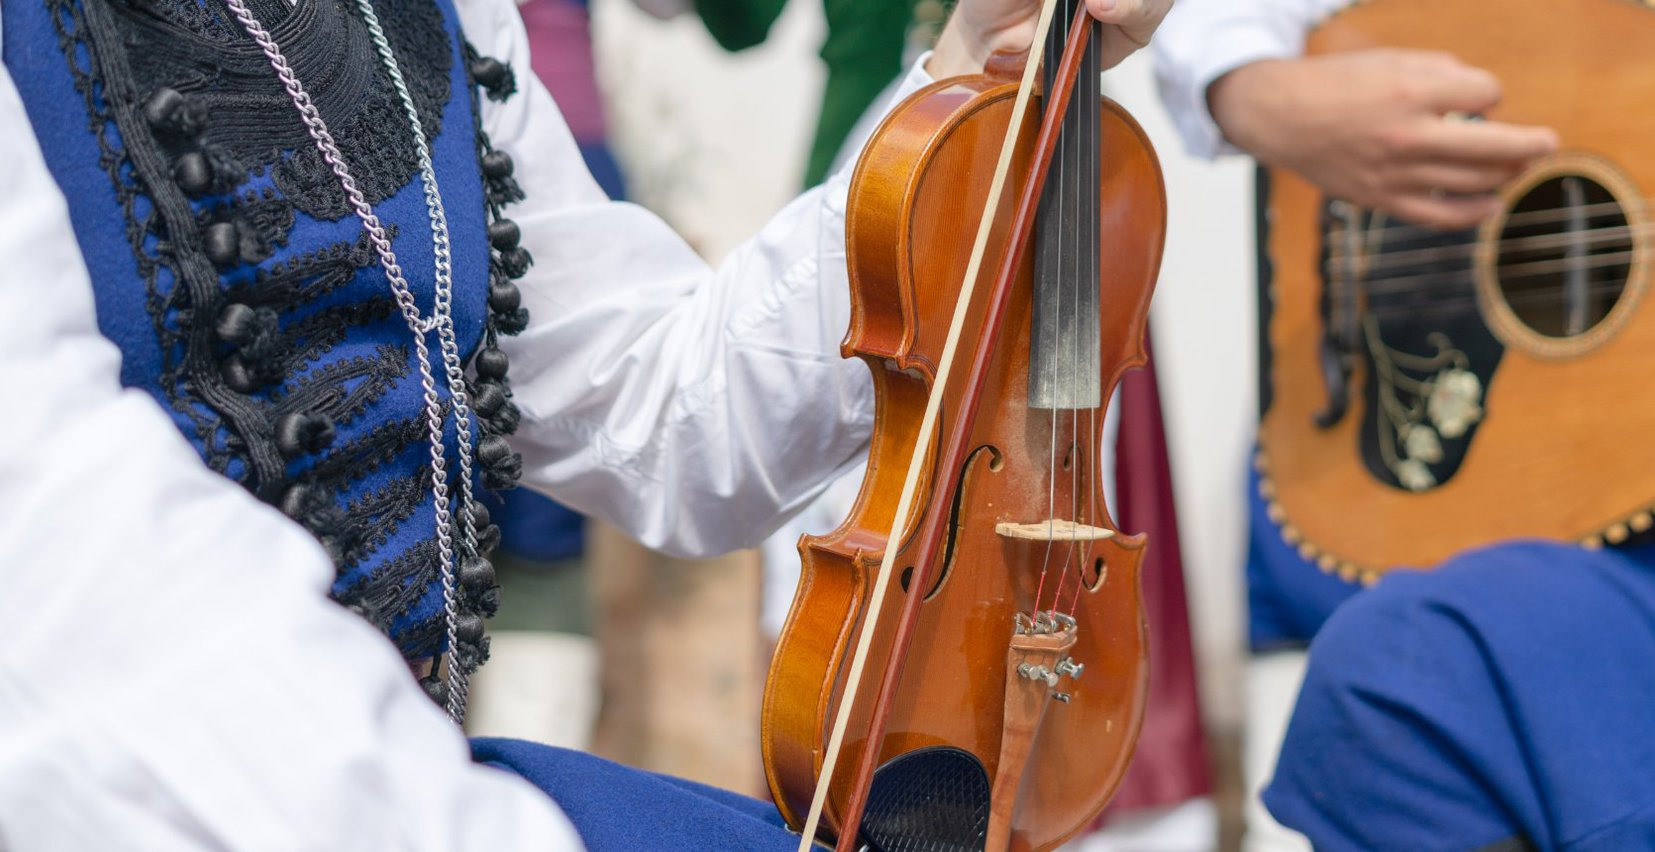 Traditional events with Cretan music and dances